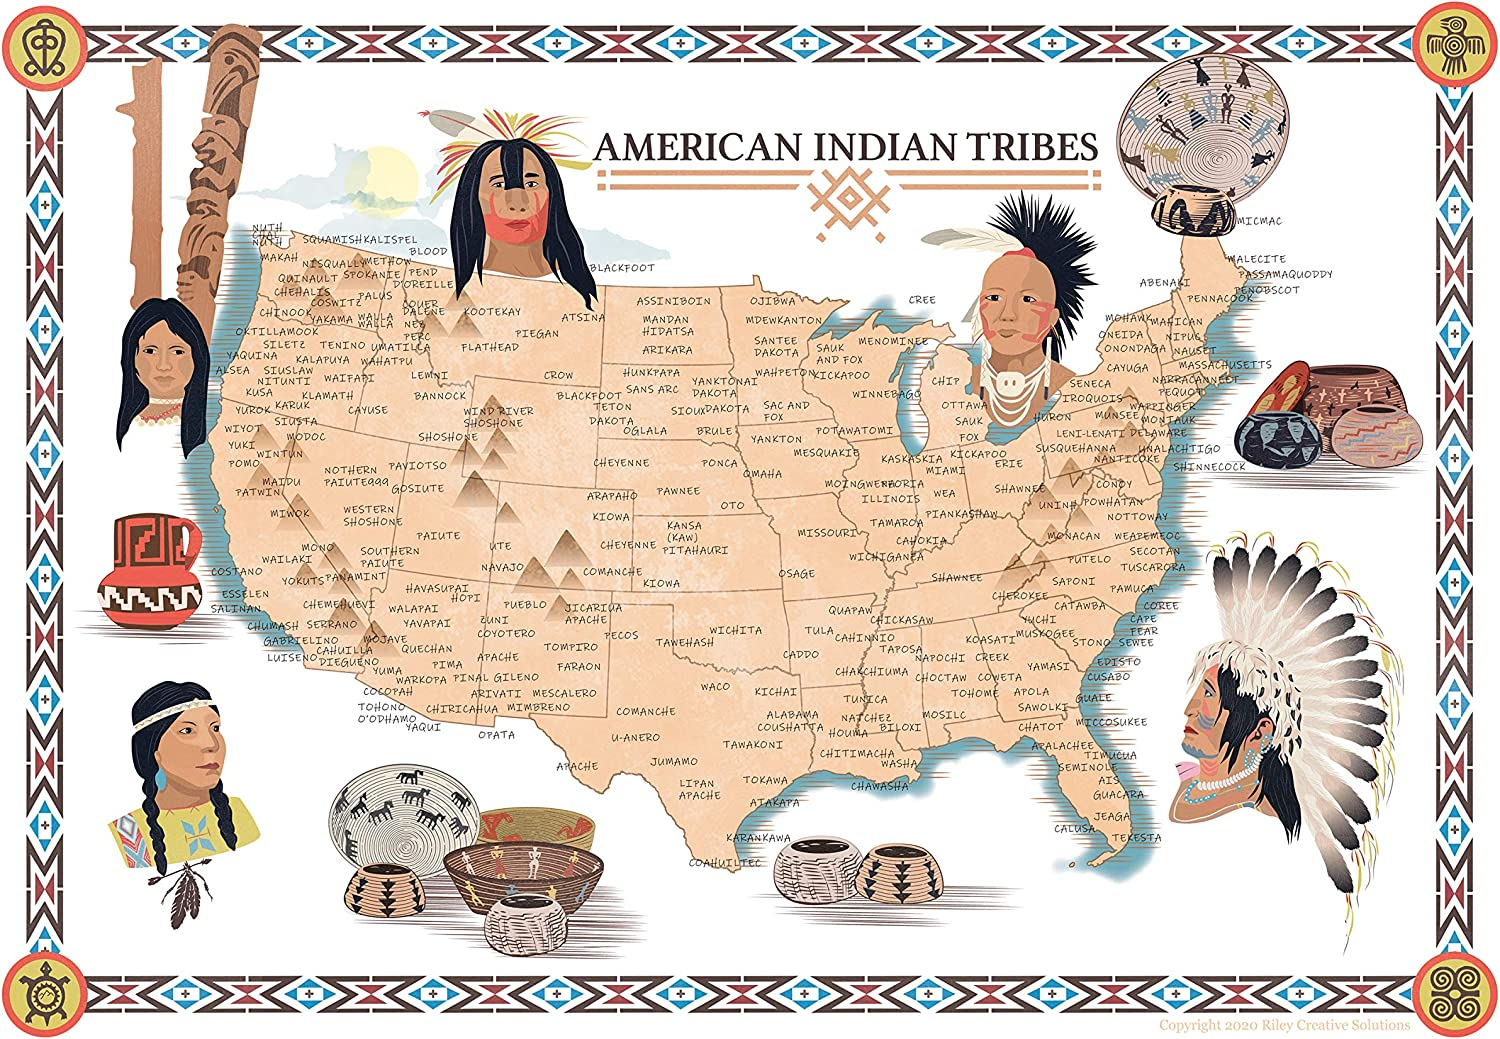 Amazon Com Riley Creative Solutions Native American Indian Tribe Map Usa History Poster Territory Tribal Spirit Nation Wall Art Home Decor 24 X36 Posters Prints